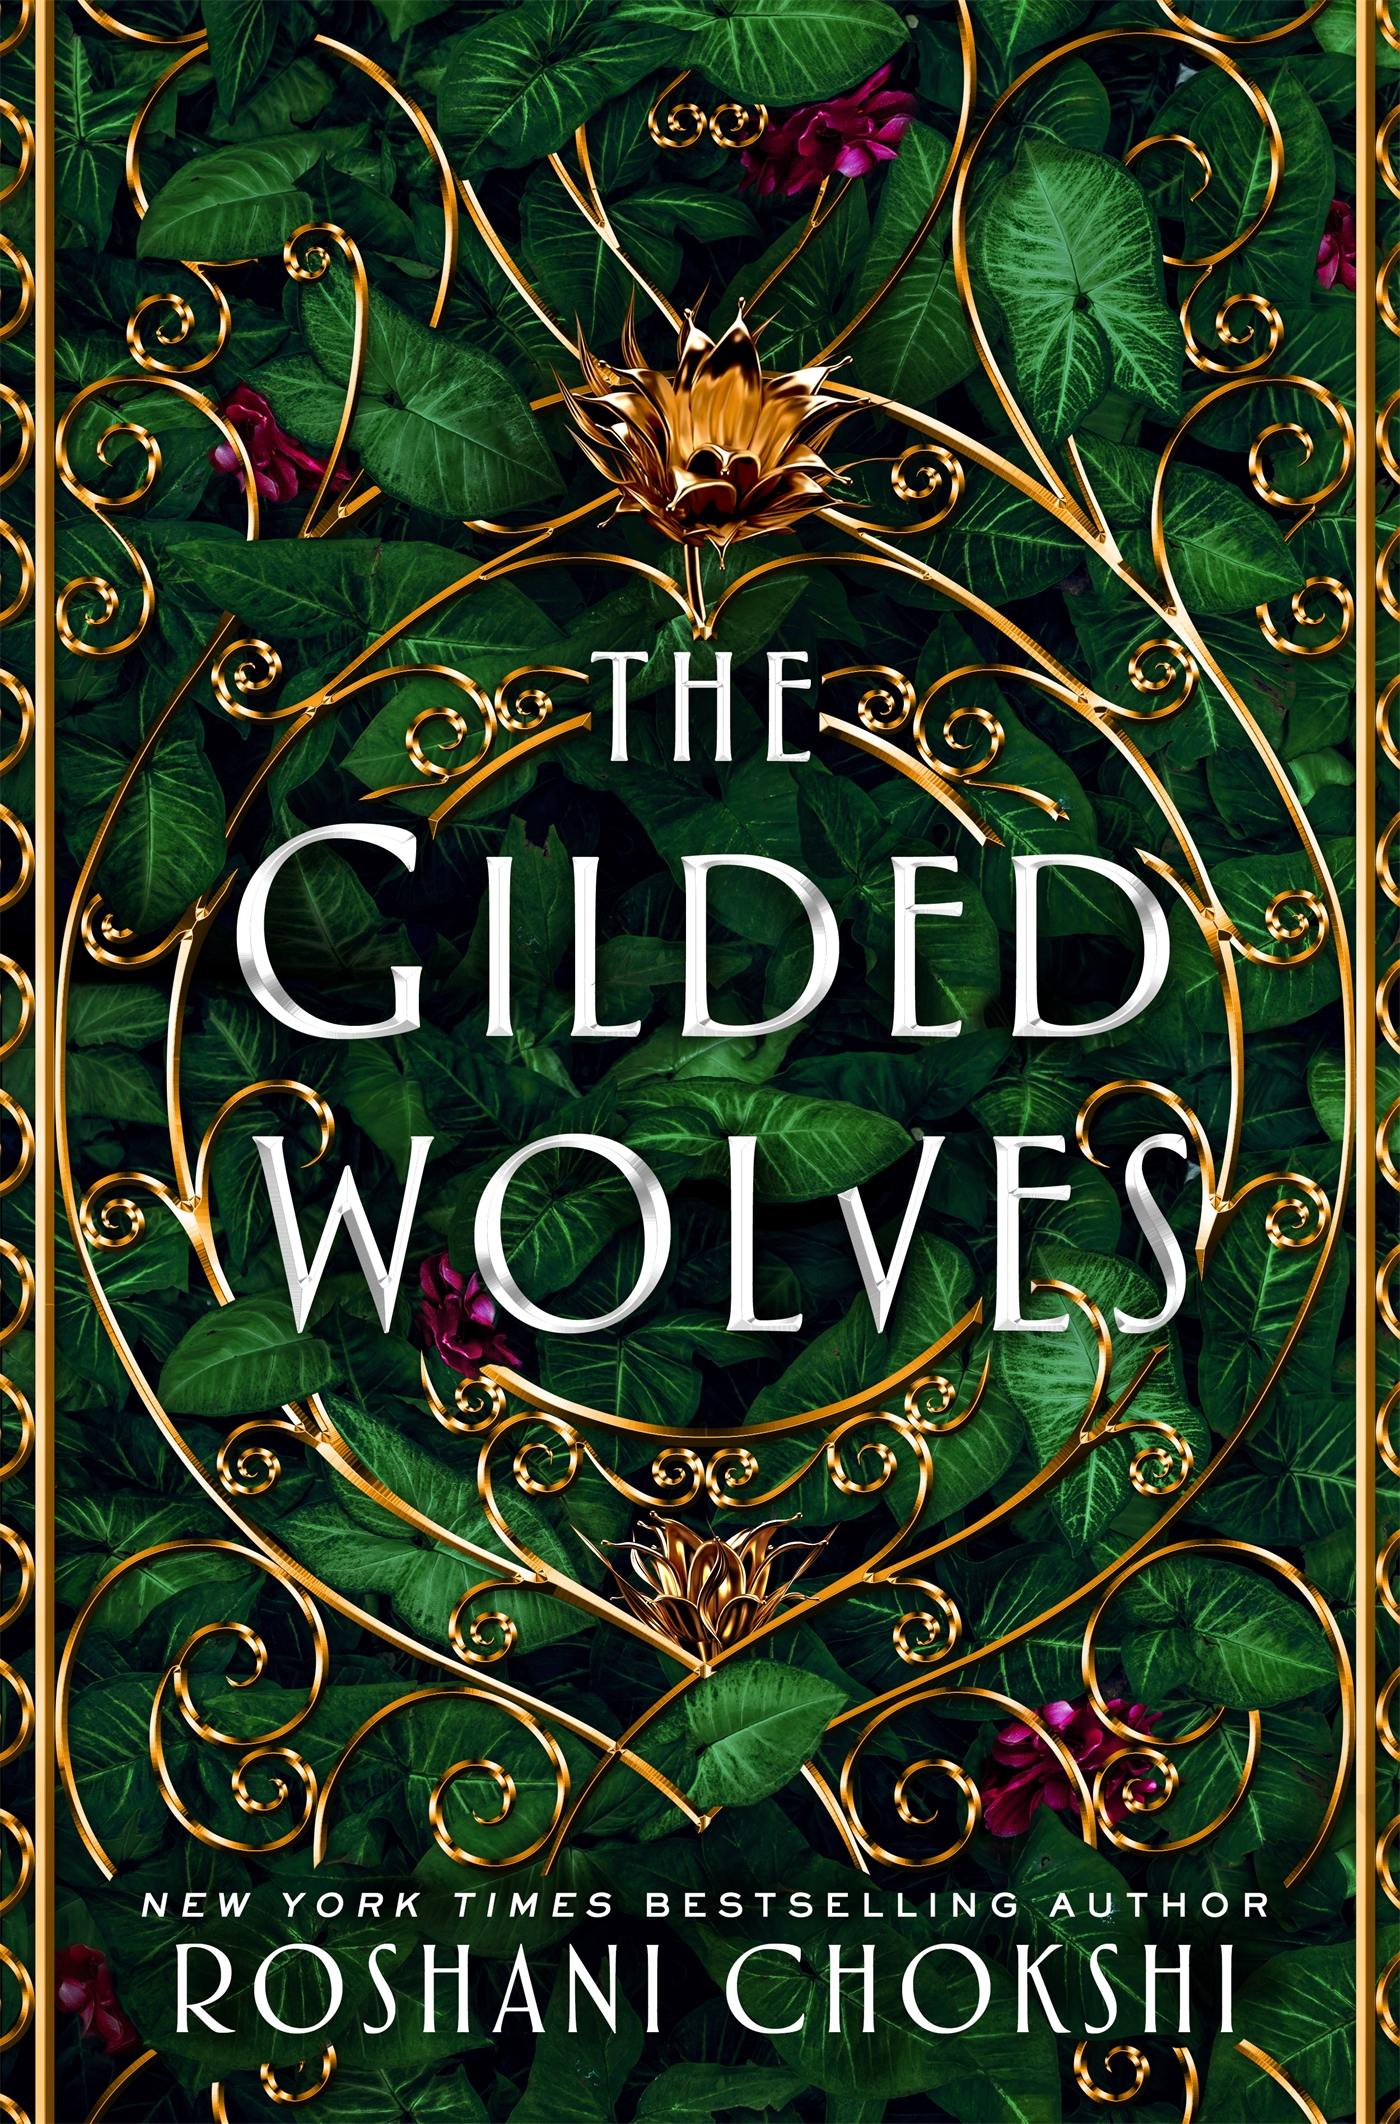 The Gilded Wolves by Roshani Chokshi (23 Books by Filipino Diaspora Authors For Your Shelf)